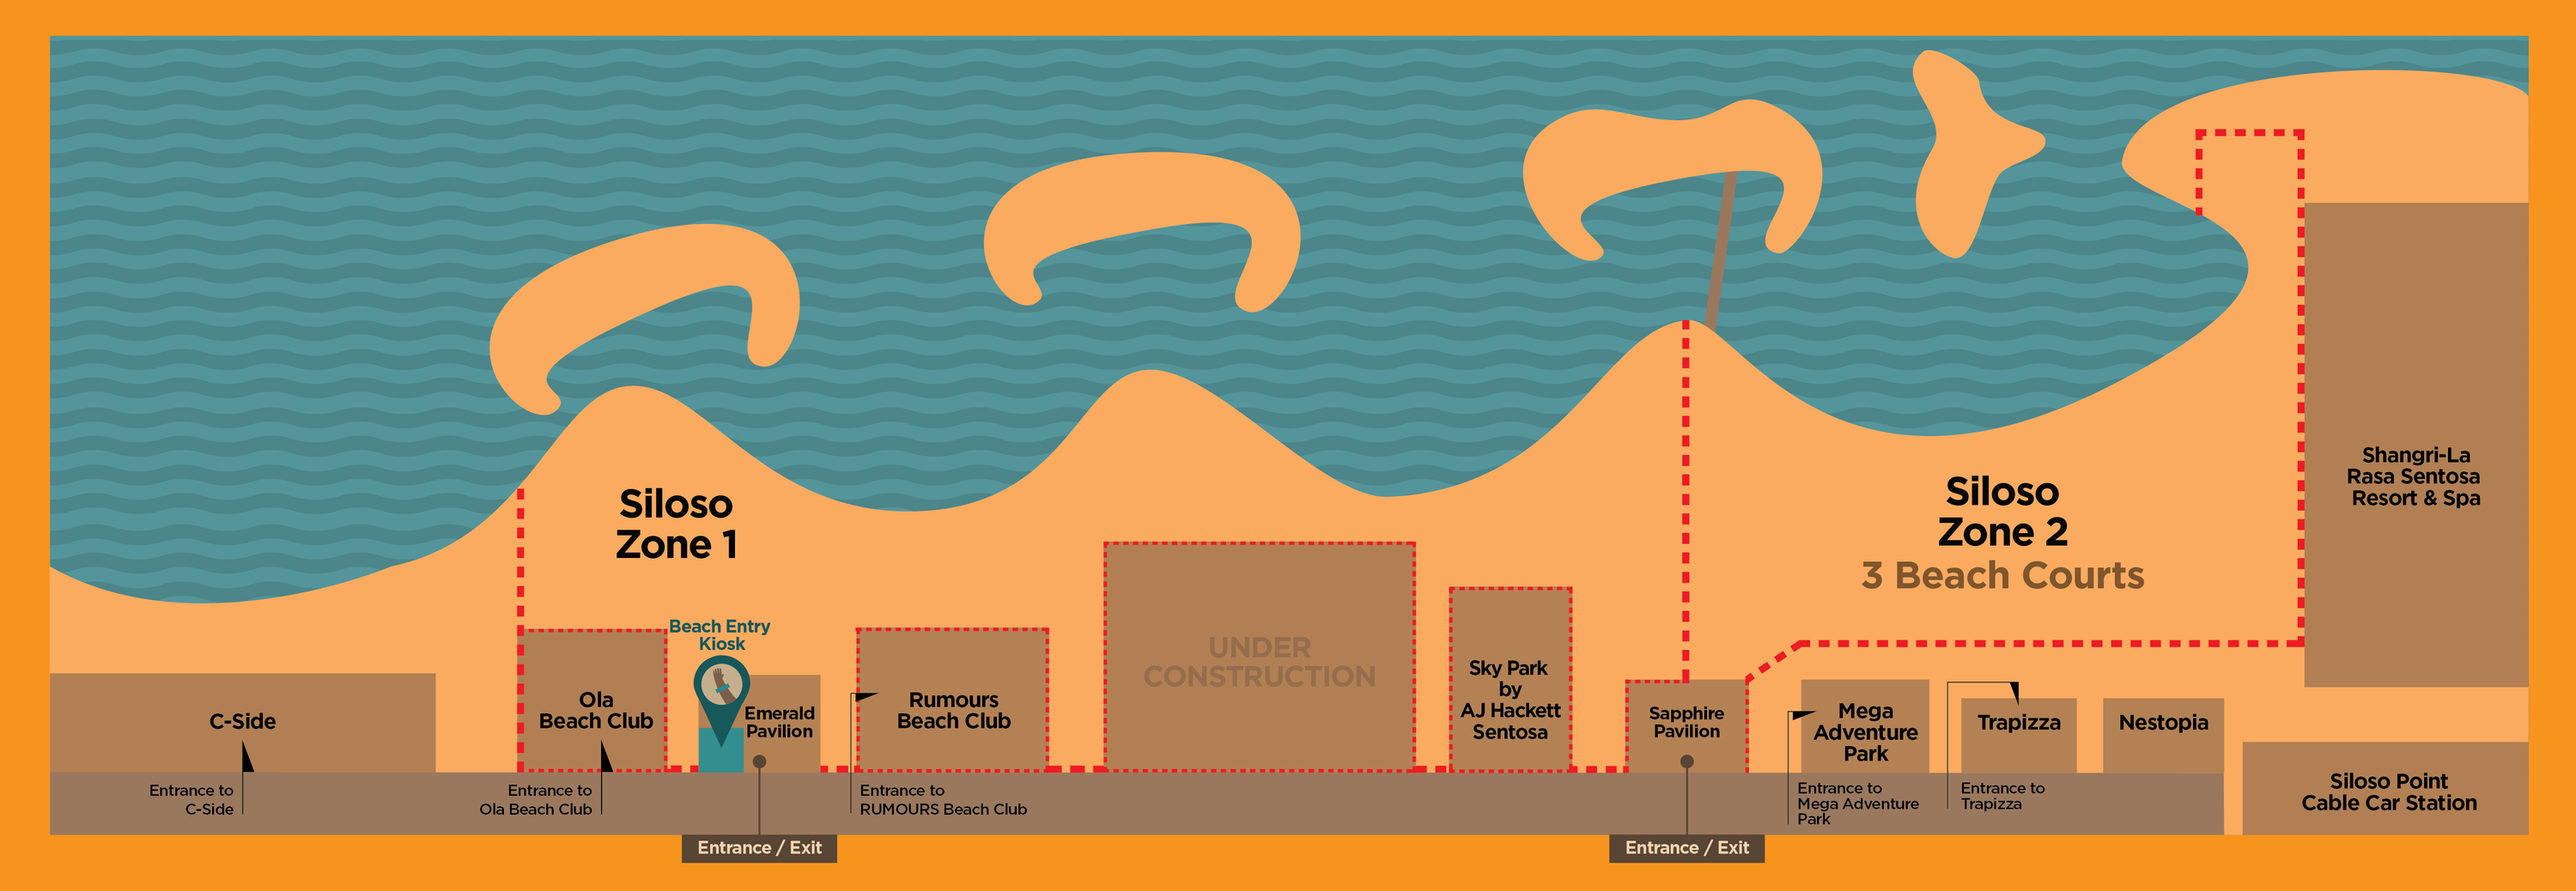 Beach Segmentation and Safe Management Measures Infographic GIS